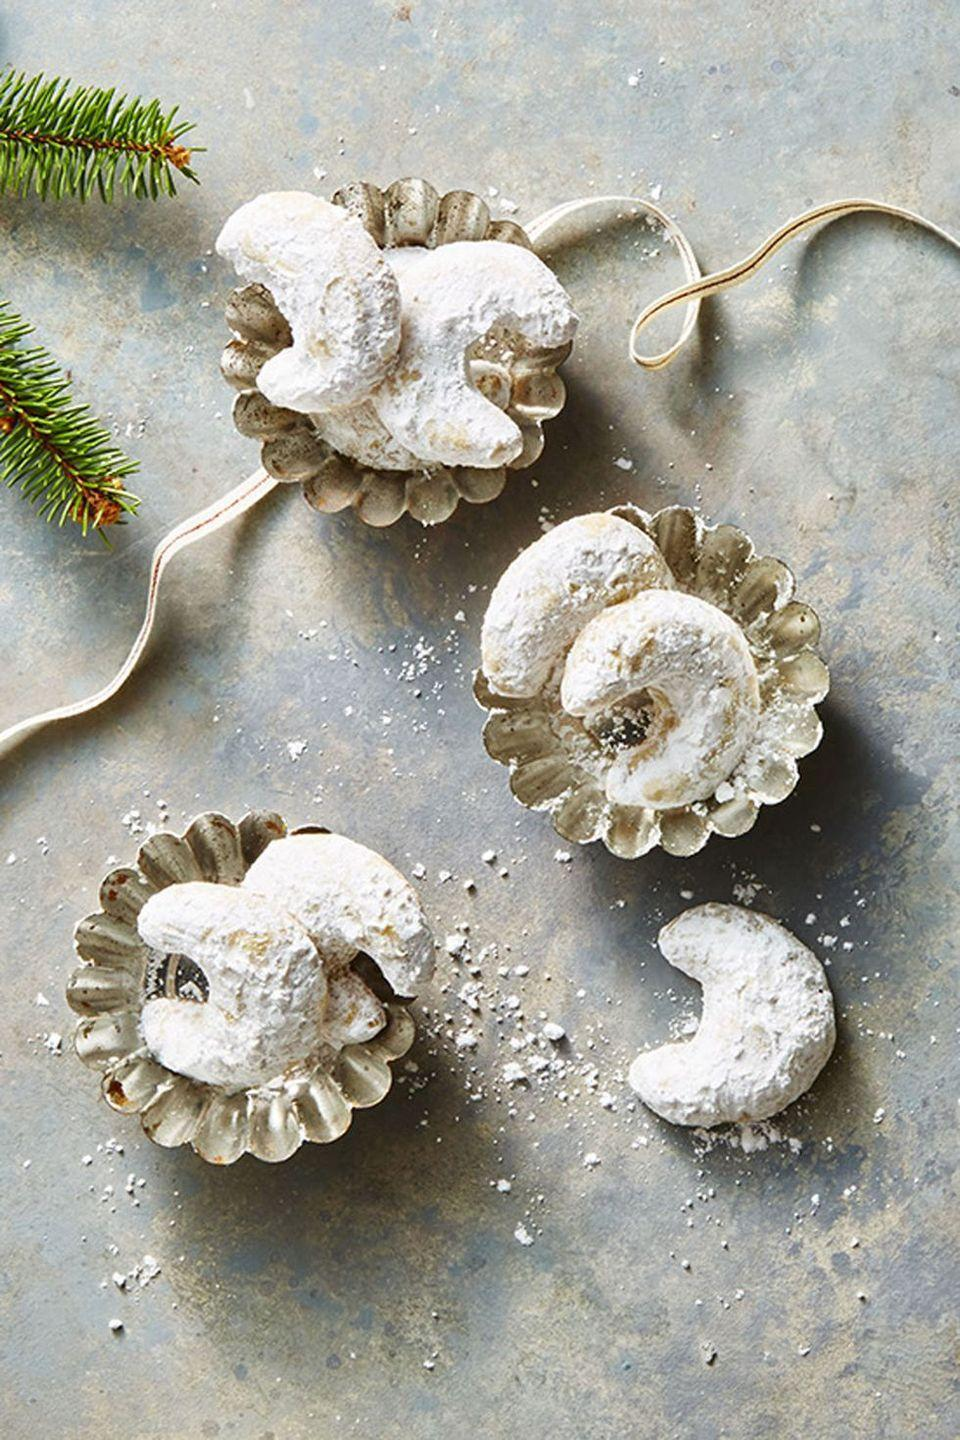 """<p>Full of ground walnuts, cardamom and cinnamon, these snowy treats are perfect for the holidays.</p><p><em><a href=""""https://www.goodhousekeeping.com/food-recipes/dessert/a46911/walnut-crescent-cookies-recipe/"""" rel=""""nofollow noopener"""" target=""""_blank"""" data-ylk=""""slk:Get the recipe for Walnut Crescent Cookies »"""" class=""""link rapid-noclick-resp"""">Get the recipe for Walnut Crescent Cookies »</a></em></p>"""